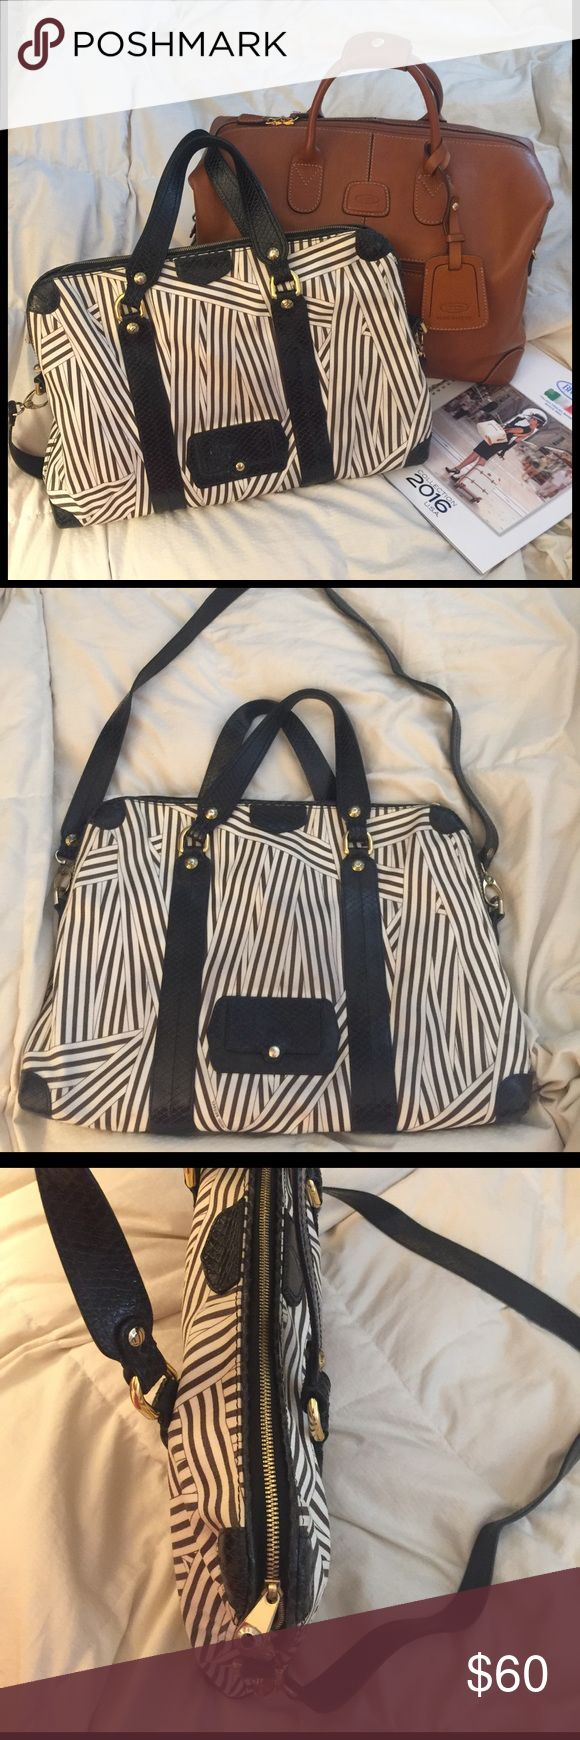 """HENRI BENDEL ladies Laptop messenger bag briefcase HENRI BENDEL ladies' Laptop briefcase / messenger bag, in perfect condition. Used for about a year but the quality on this piece is amazing-- doesn't show any wear. Look chic on your way to the office with this spacious ladies briefcase! Pictured is a 13"""" dell laptop in the laptop compartment. There's about 1 extra inch of length space if your laptop is slightly bigger. Two large slip pockets. Very spacious middle compartment for files…"""